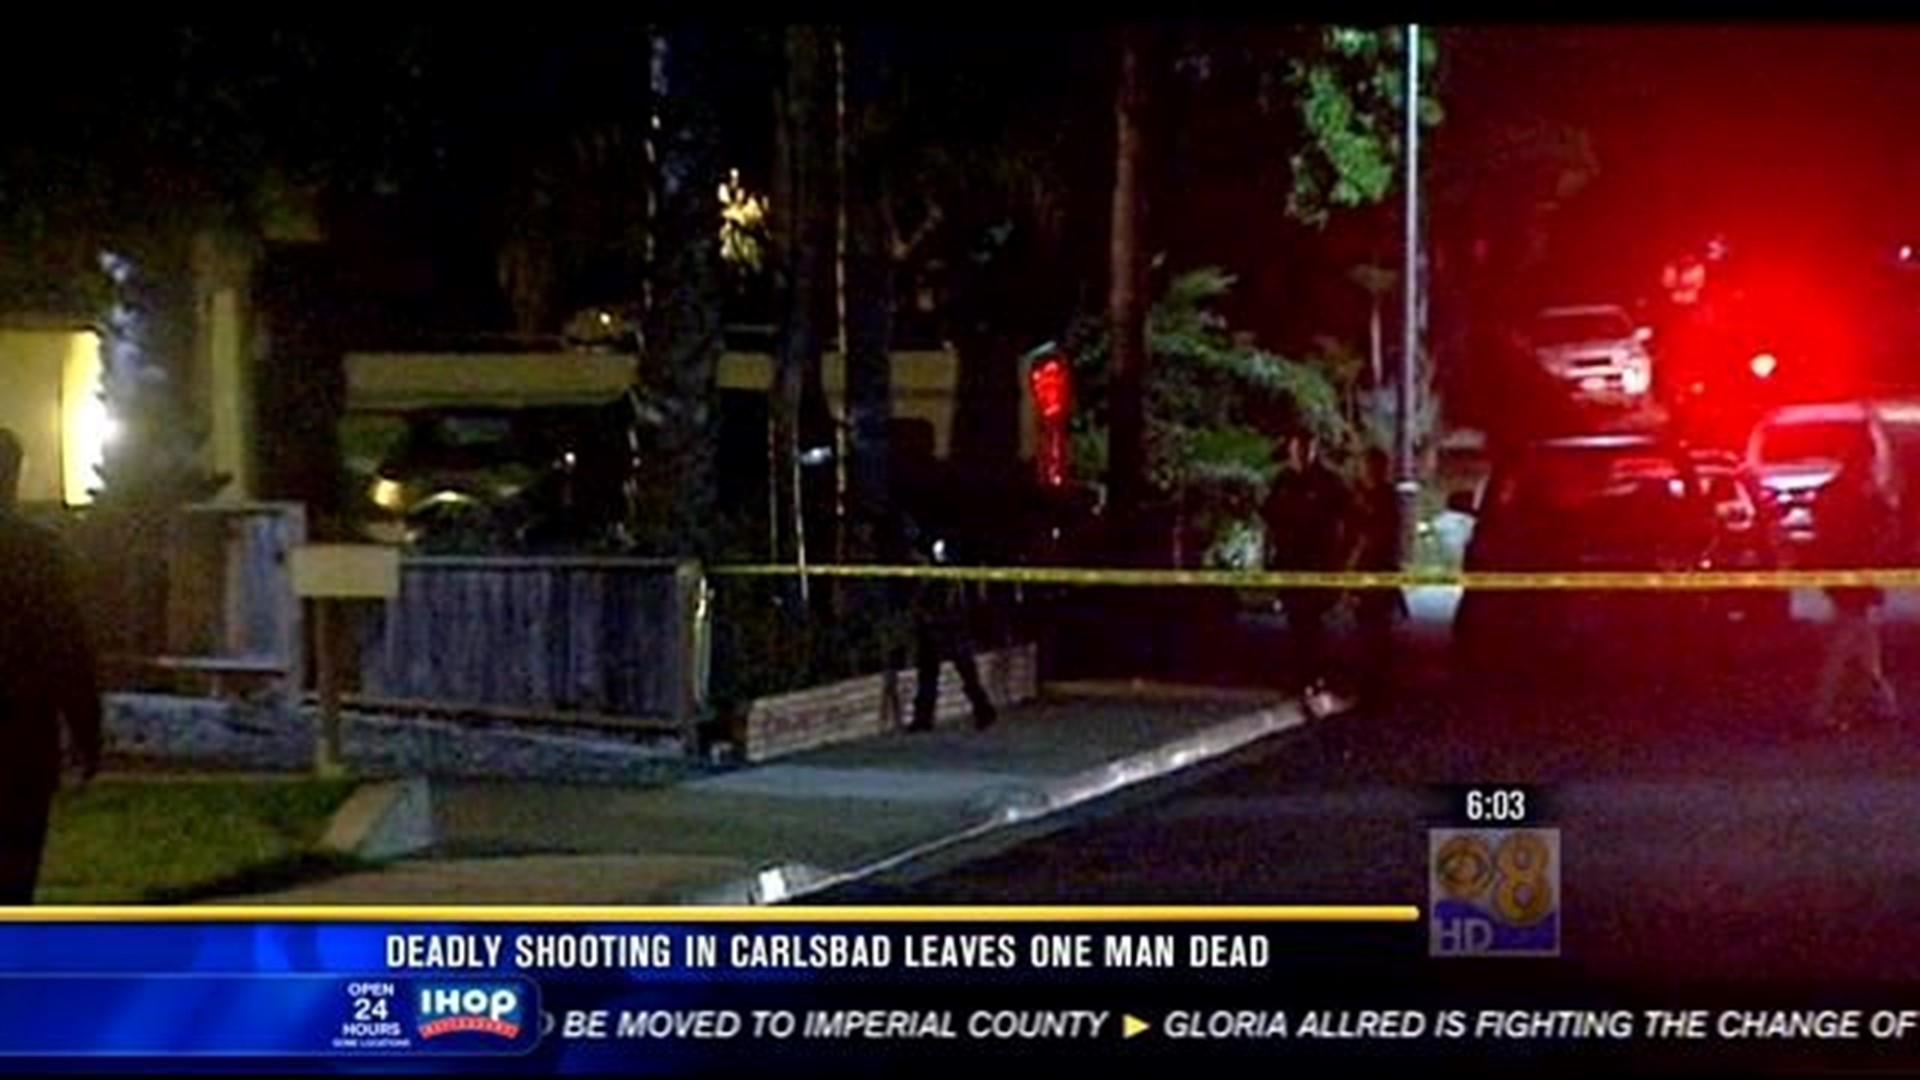 Arrest Made In Deadly Shooting In Carlsbad Cbs8 Com